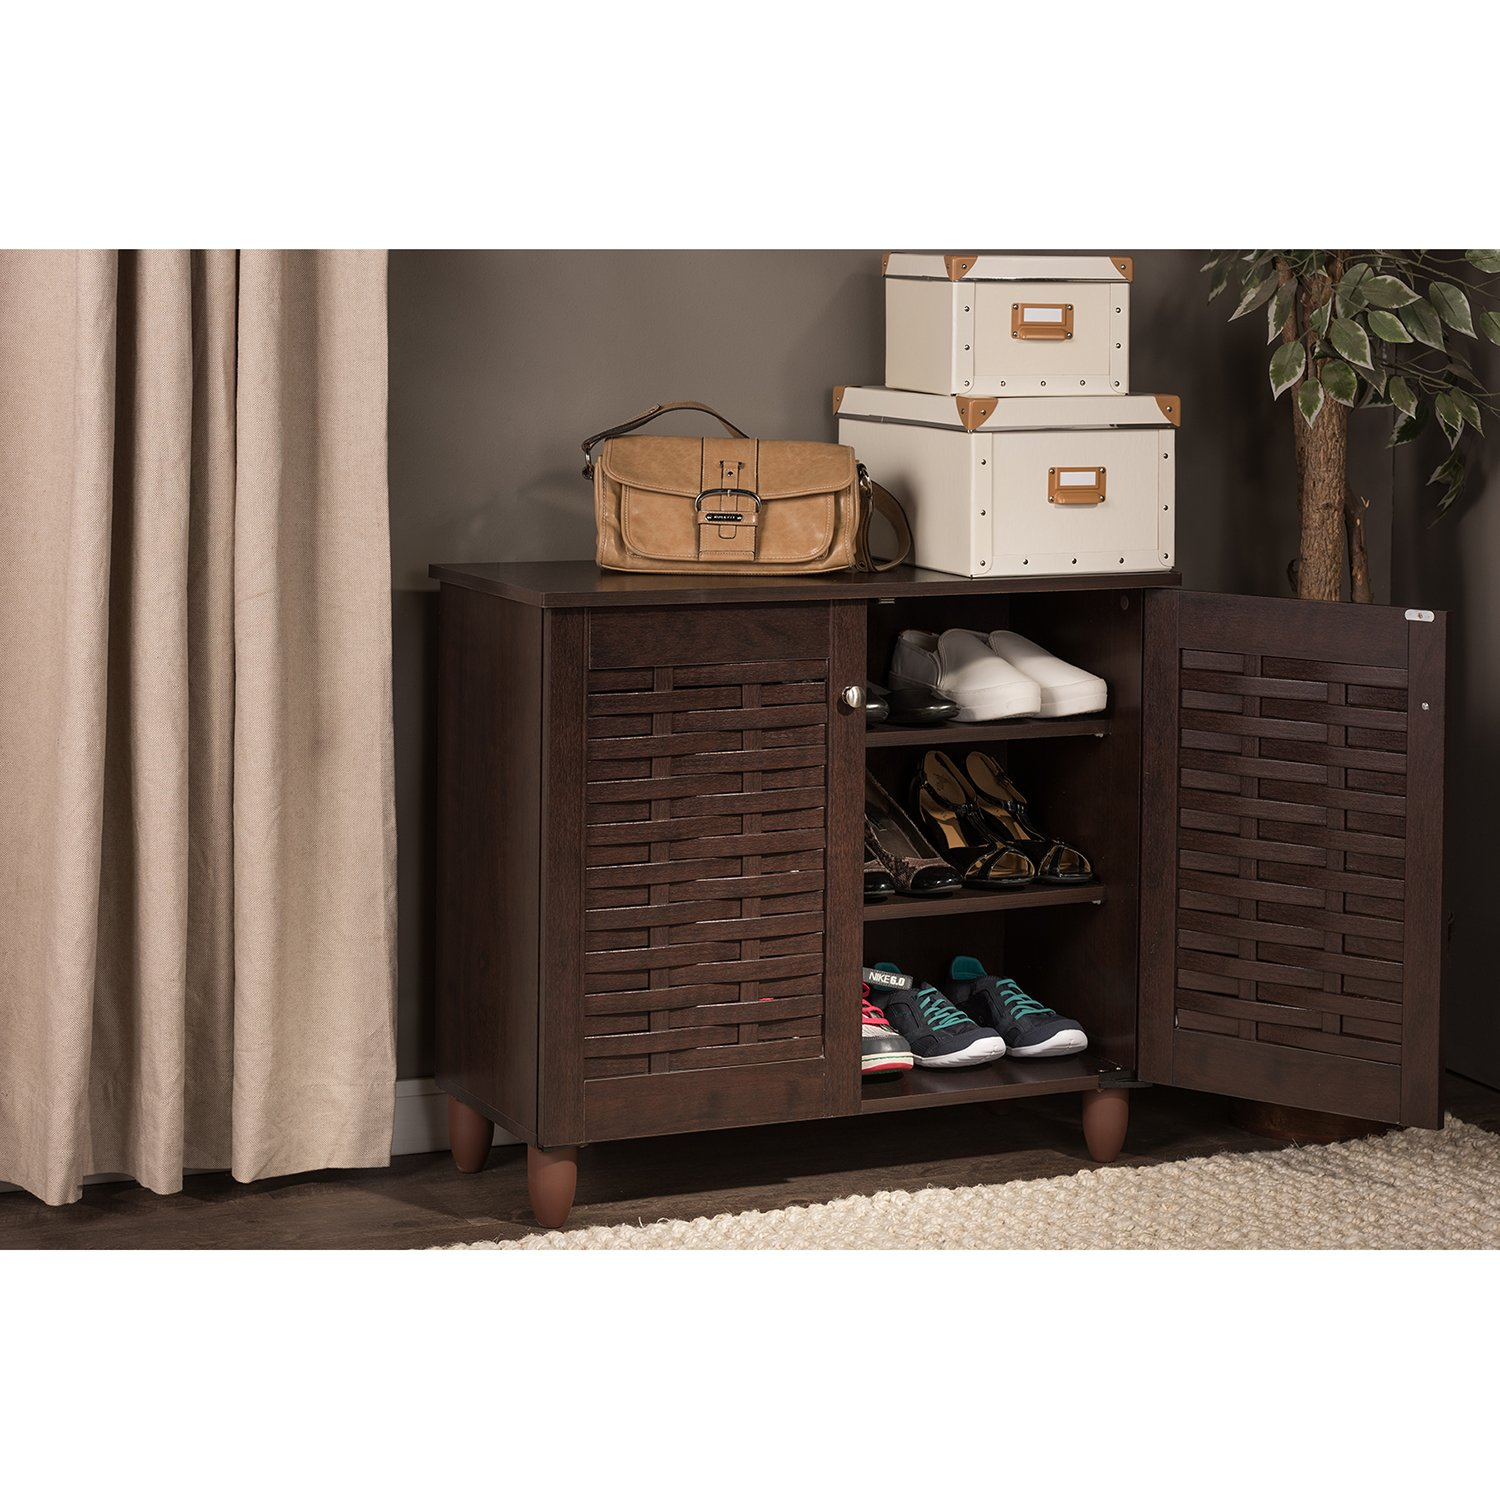 Superbe Amazon.com: Wholesale Interiors Baxton Studio Winda Modern And Contemporary  2 Door Dark Brown Wooden Entryway Shoes Storage Cabinet: Kitchen U0026 Dining